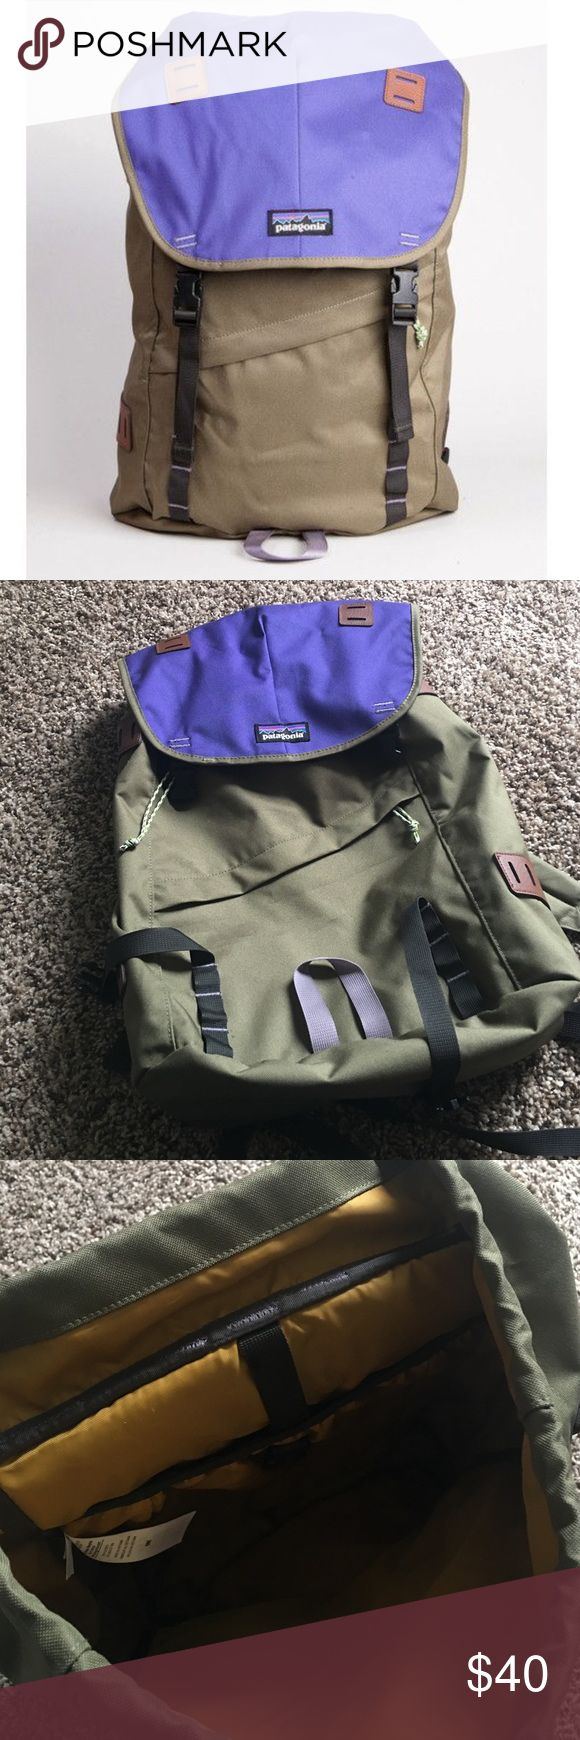 Patagonia backpack Khaki and purple backpack from Patagonia. Lots of pockets for storage, including a laptop sleeve. Straps are very padded for comfort and the bag is very sturdy to hold heavy items. Only used a couple times and in great shape. Patagonia Bags Backpacks